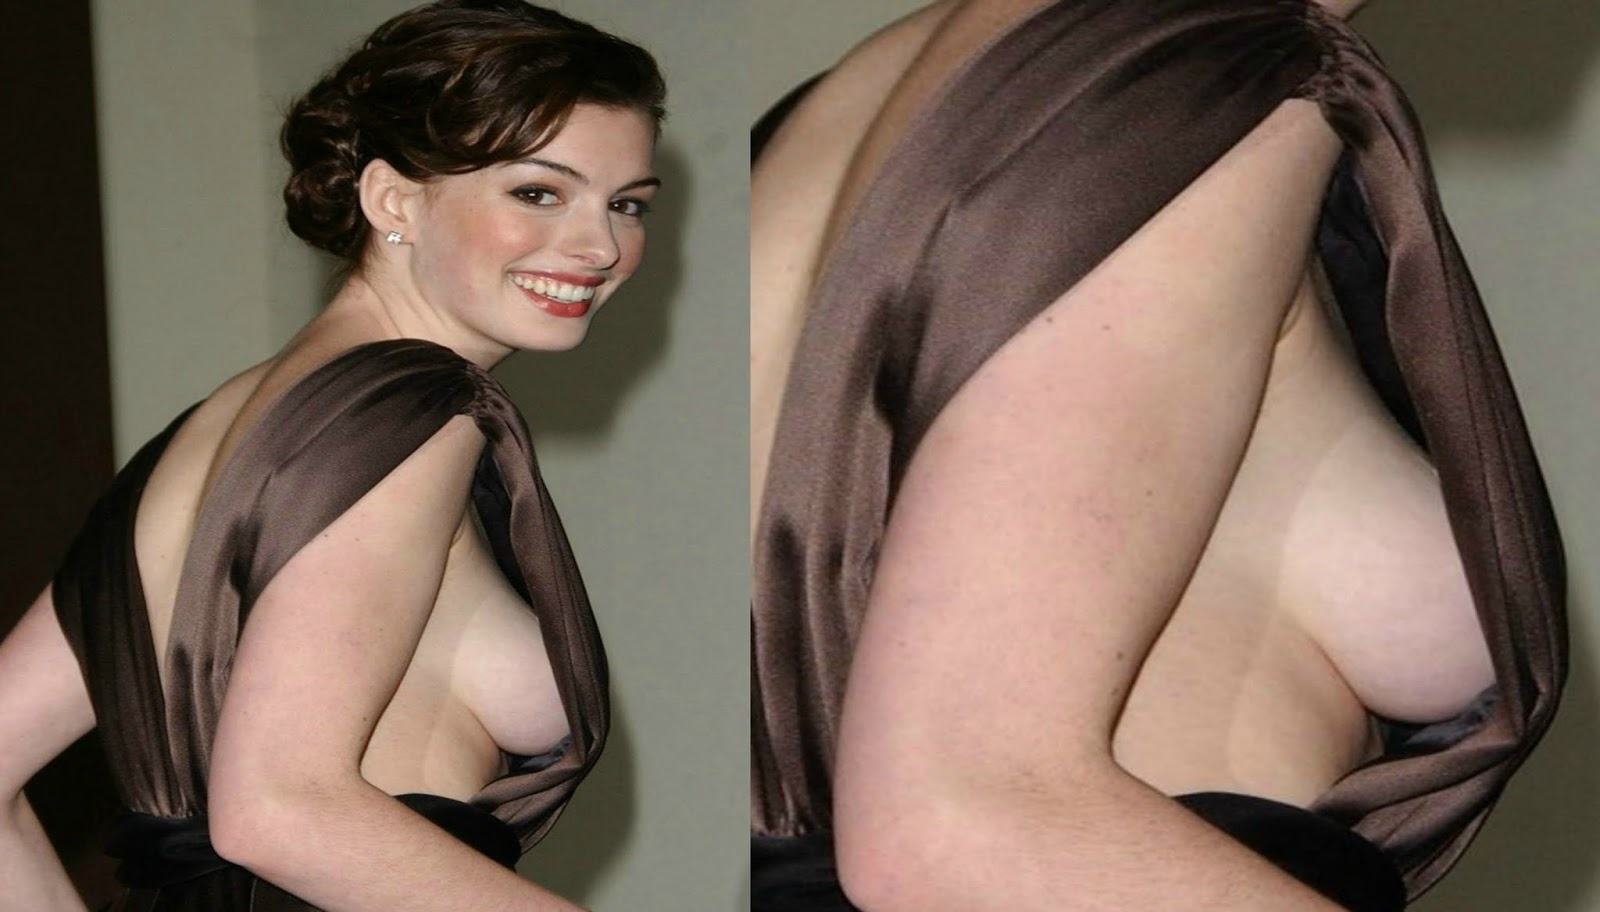 Ass naked anne pictures hathaway